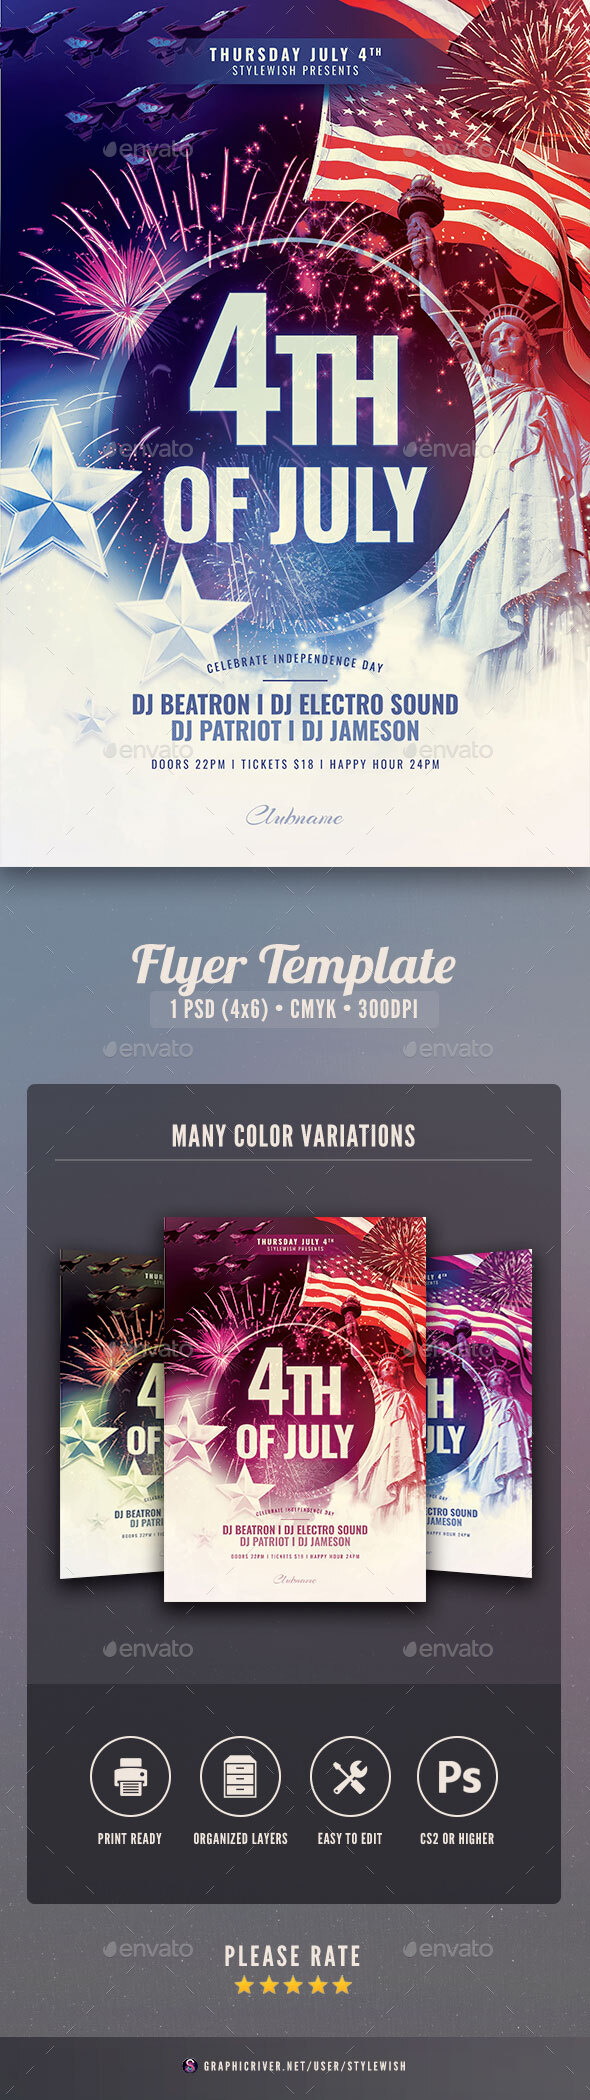 Flyers PSD – 4th of July Flyer – Download